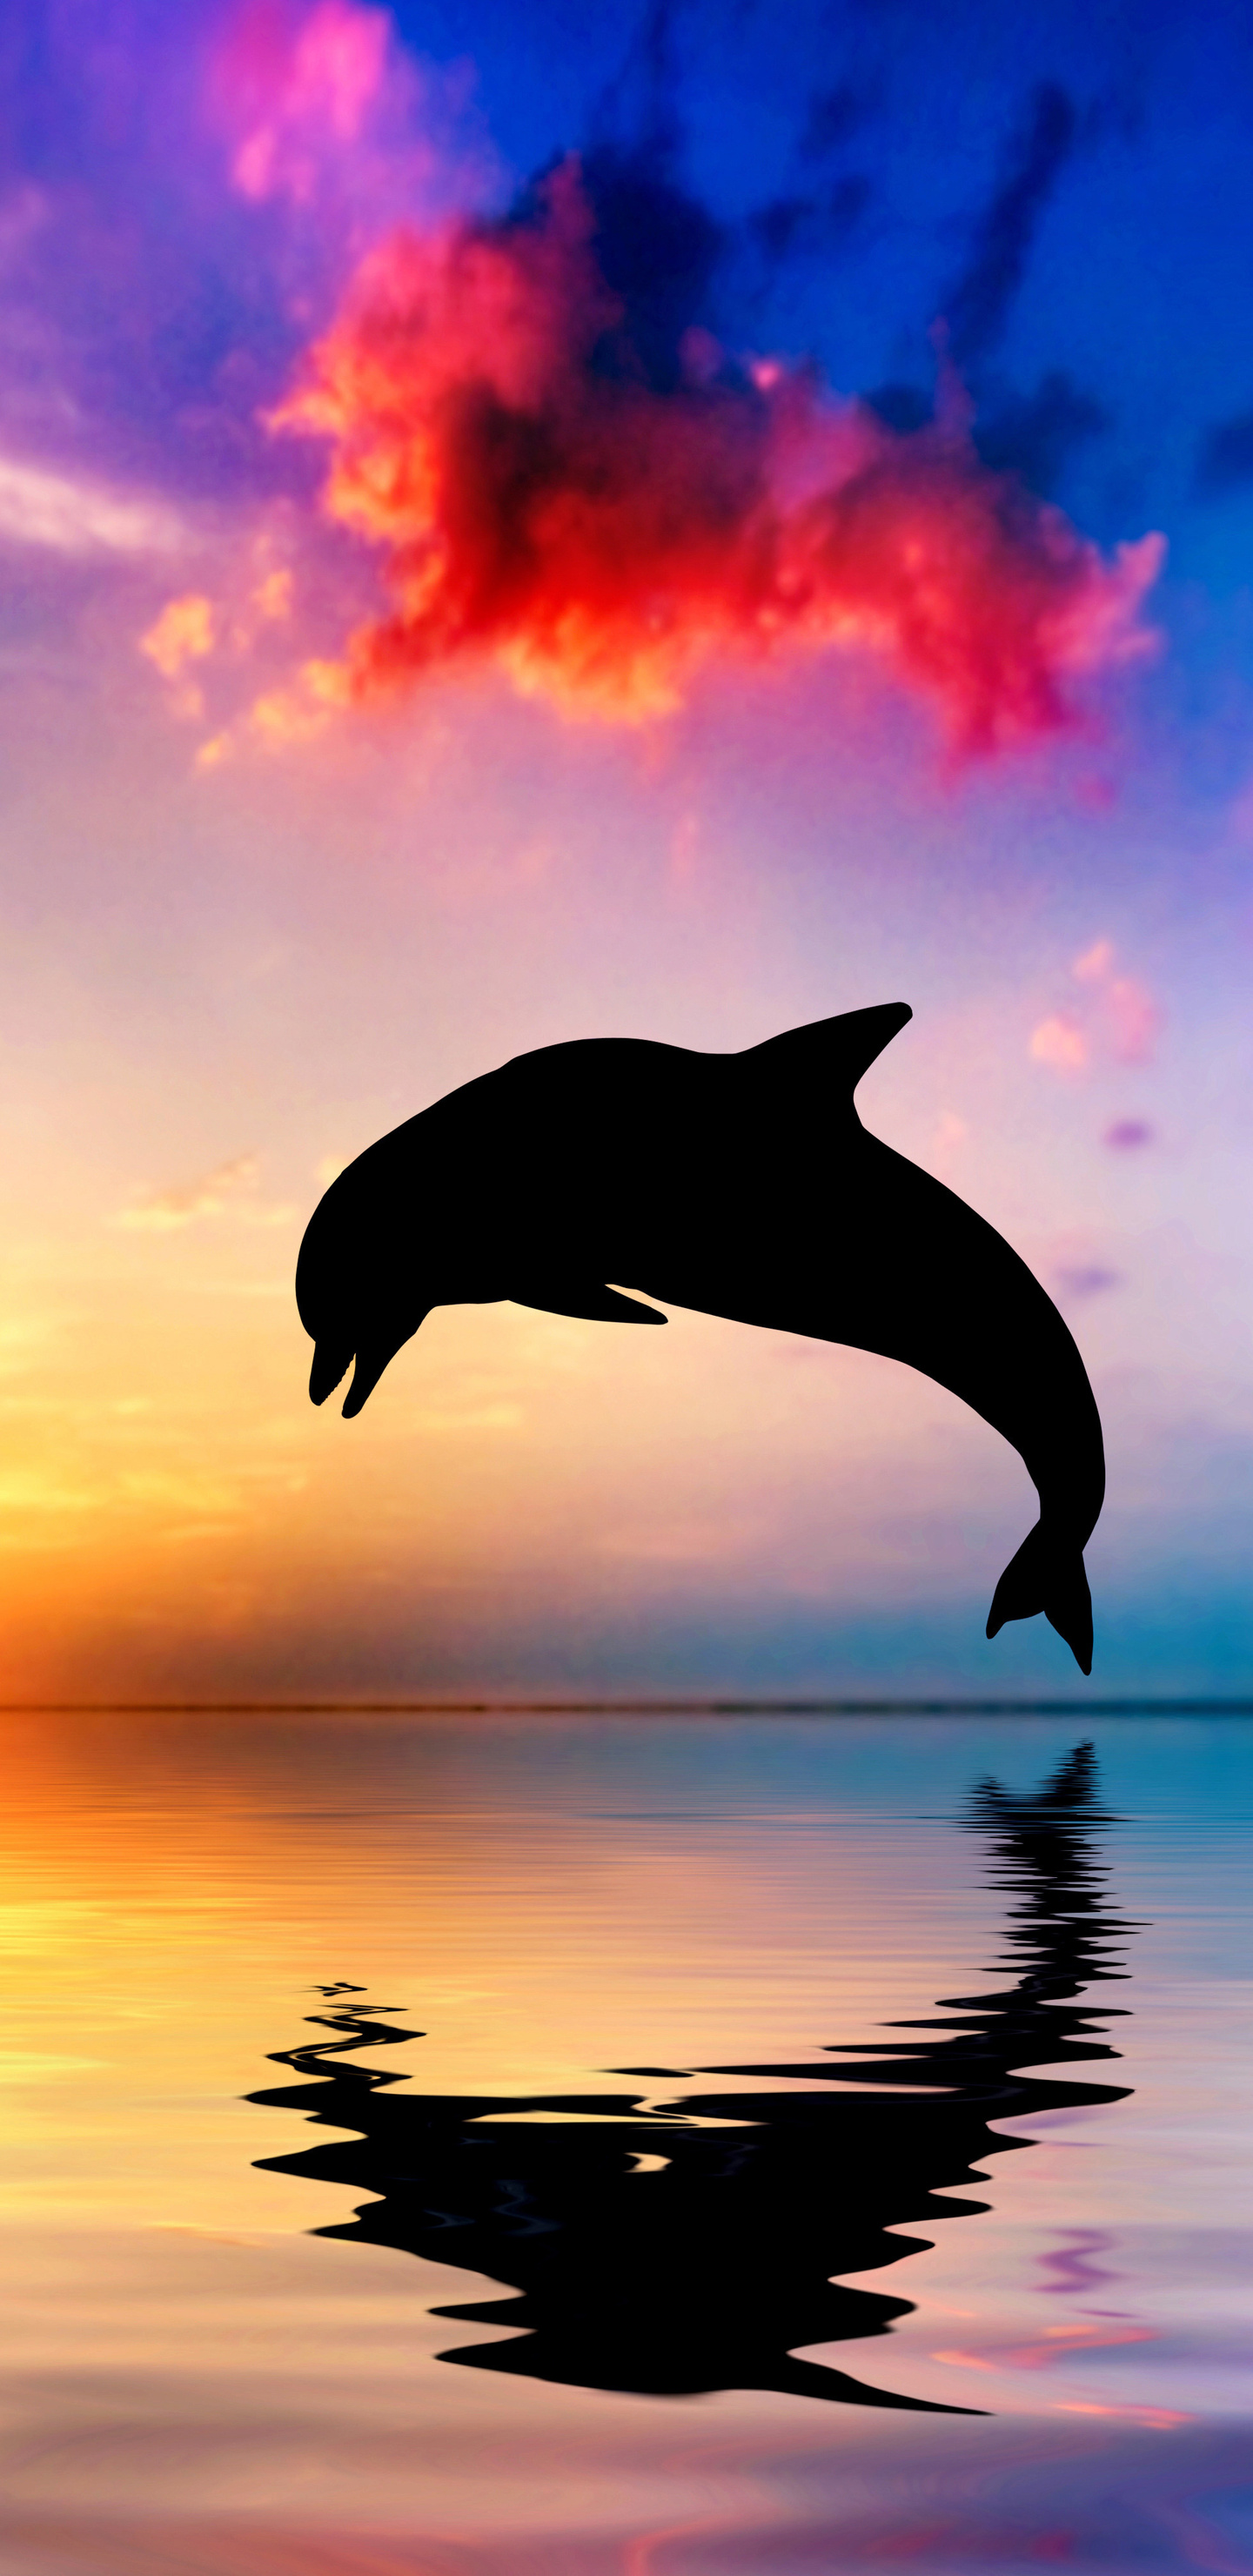 1440x2960 Dolphin Jumping Out Of Water Sunset View 4k Samsung Galaxy